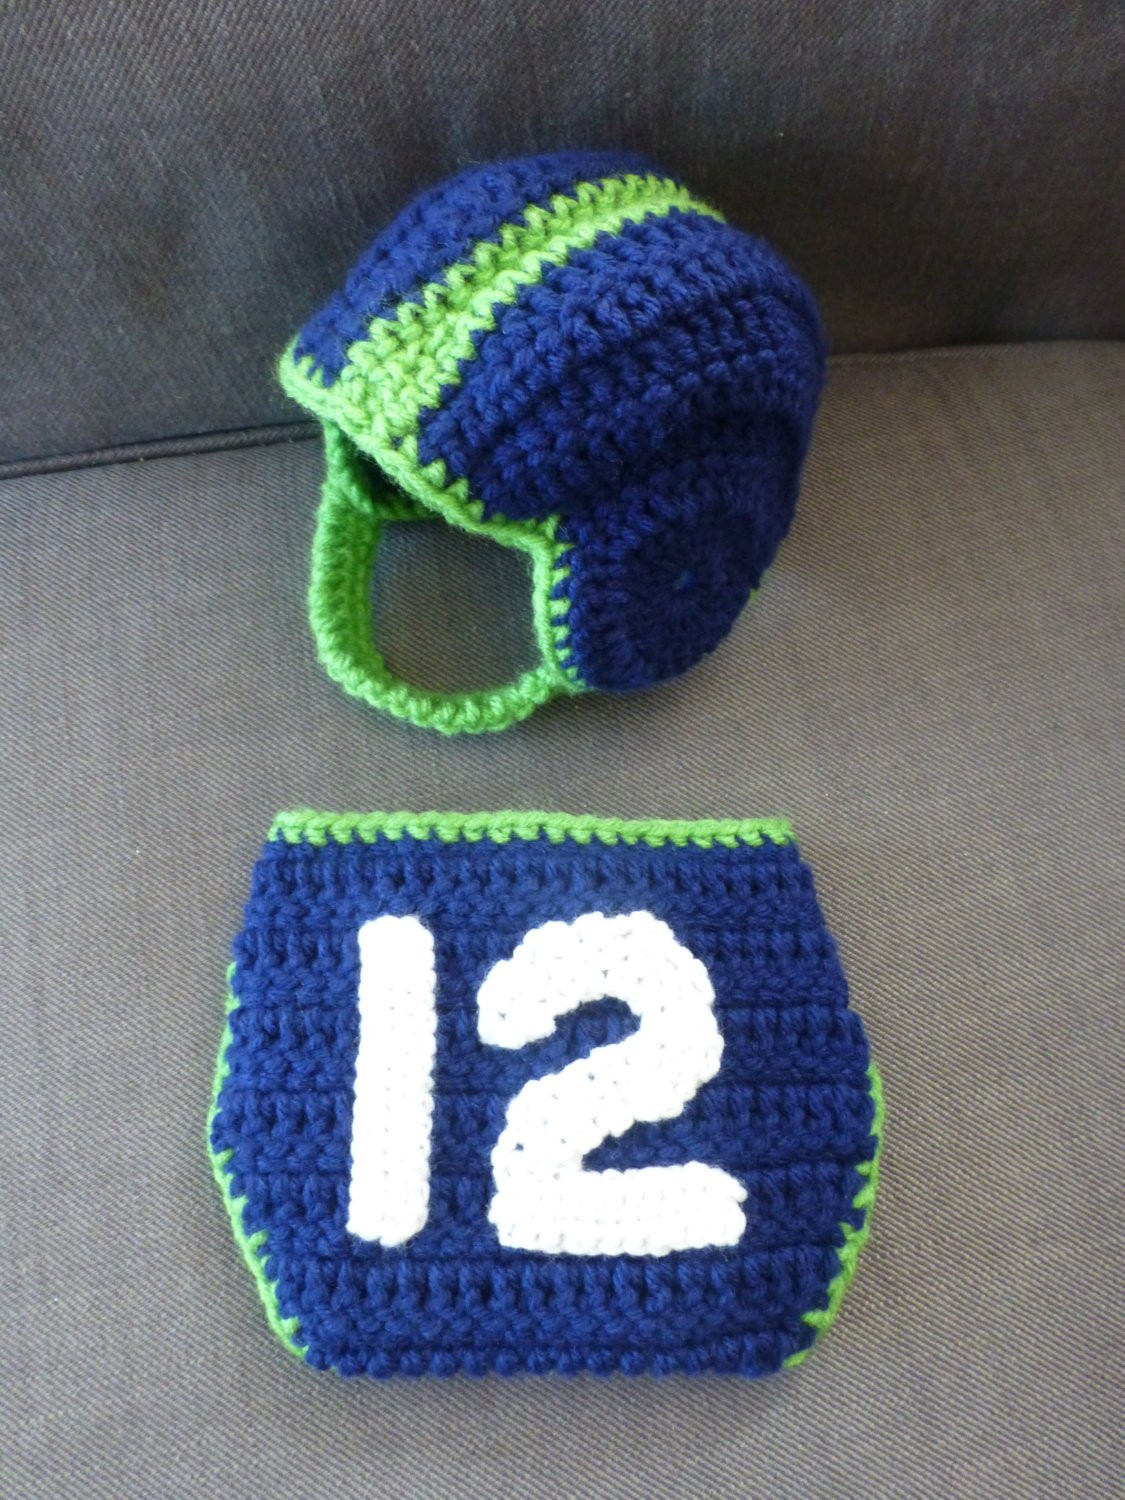 Awesome Crocheted Newborn Baby Boy Seattle Seahawks Inspired Football Crochet Football Helmets Of Lovely 48 Pics Crochet Football Helmets